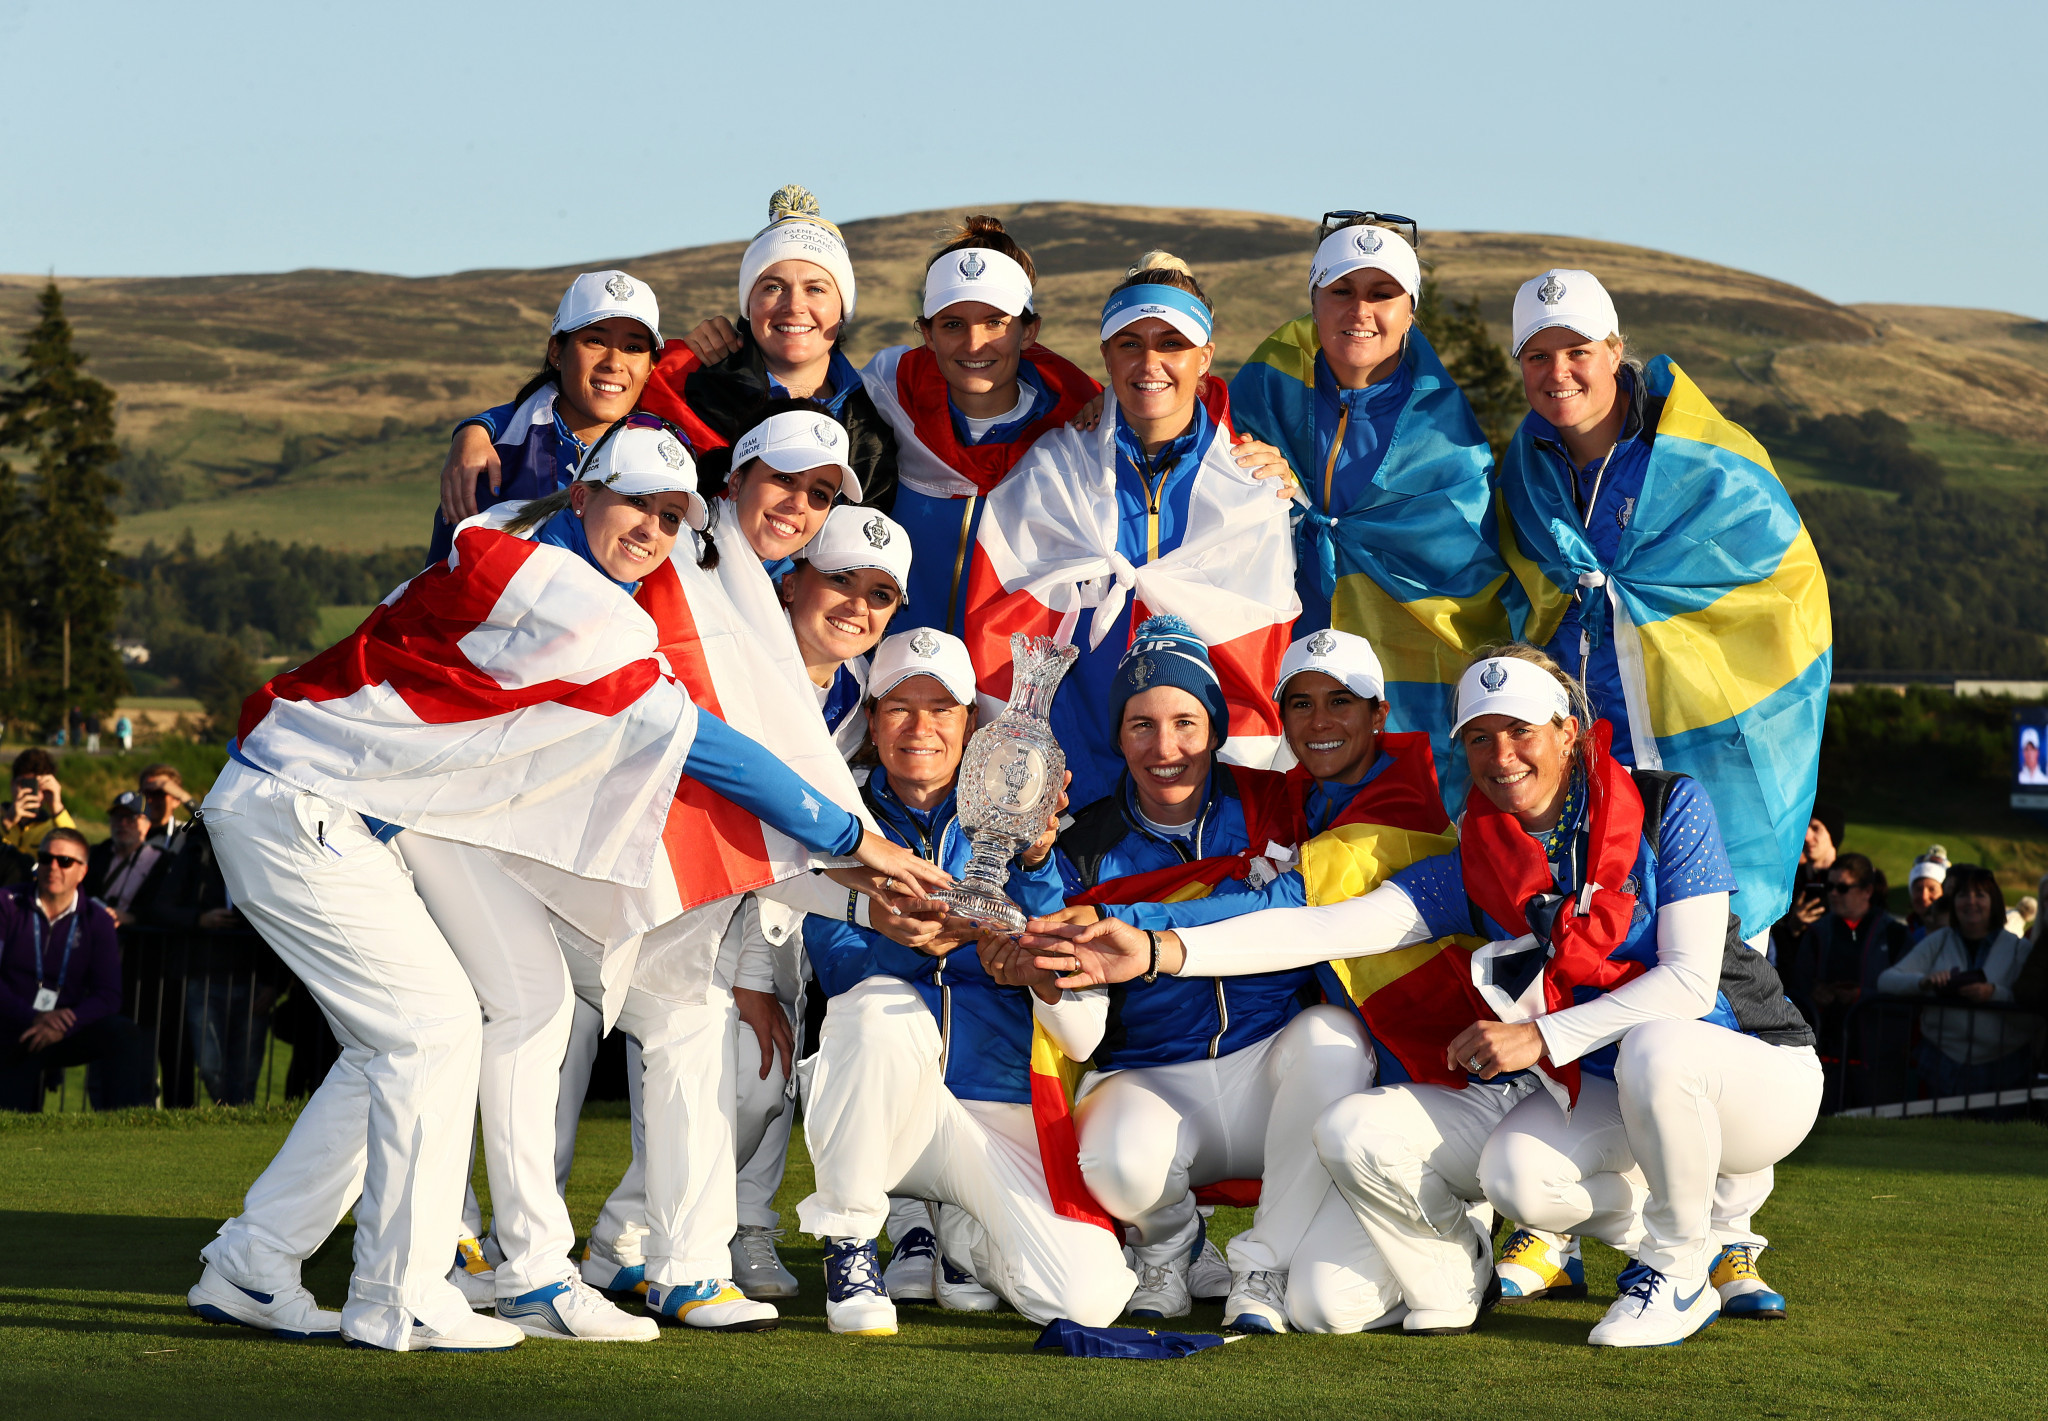 Europe will defend its title at the 2021 Solheim Cup ©Getty Images